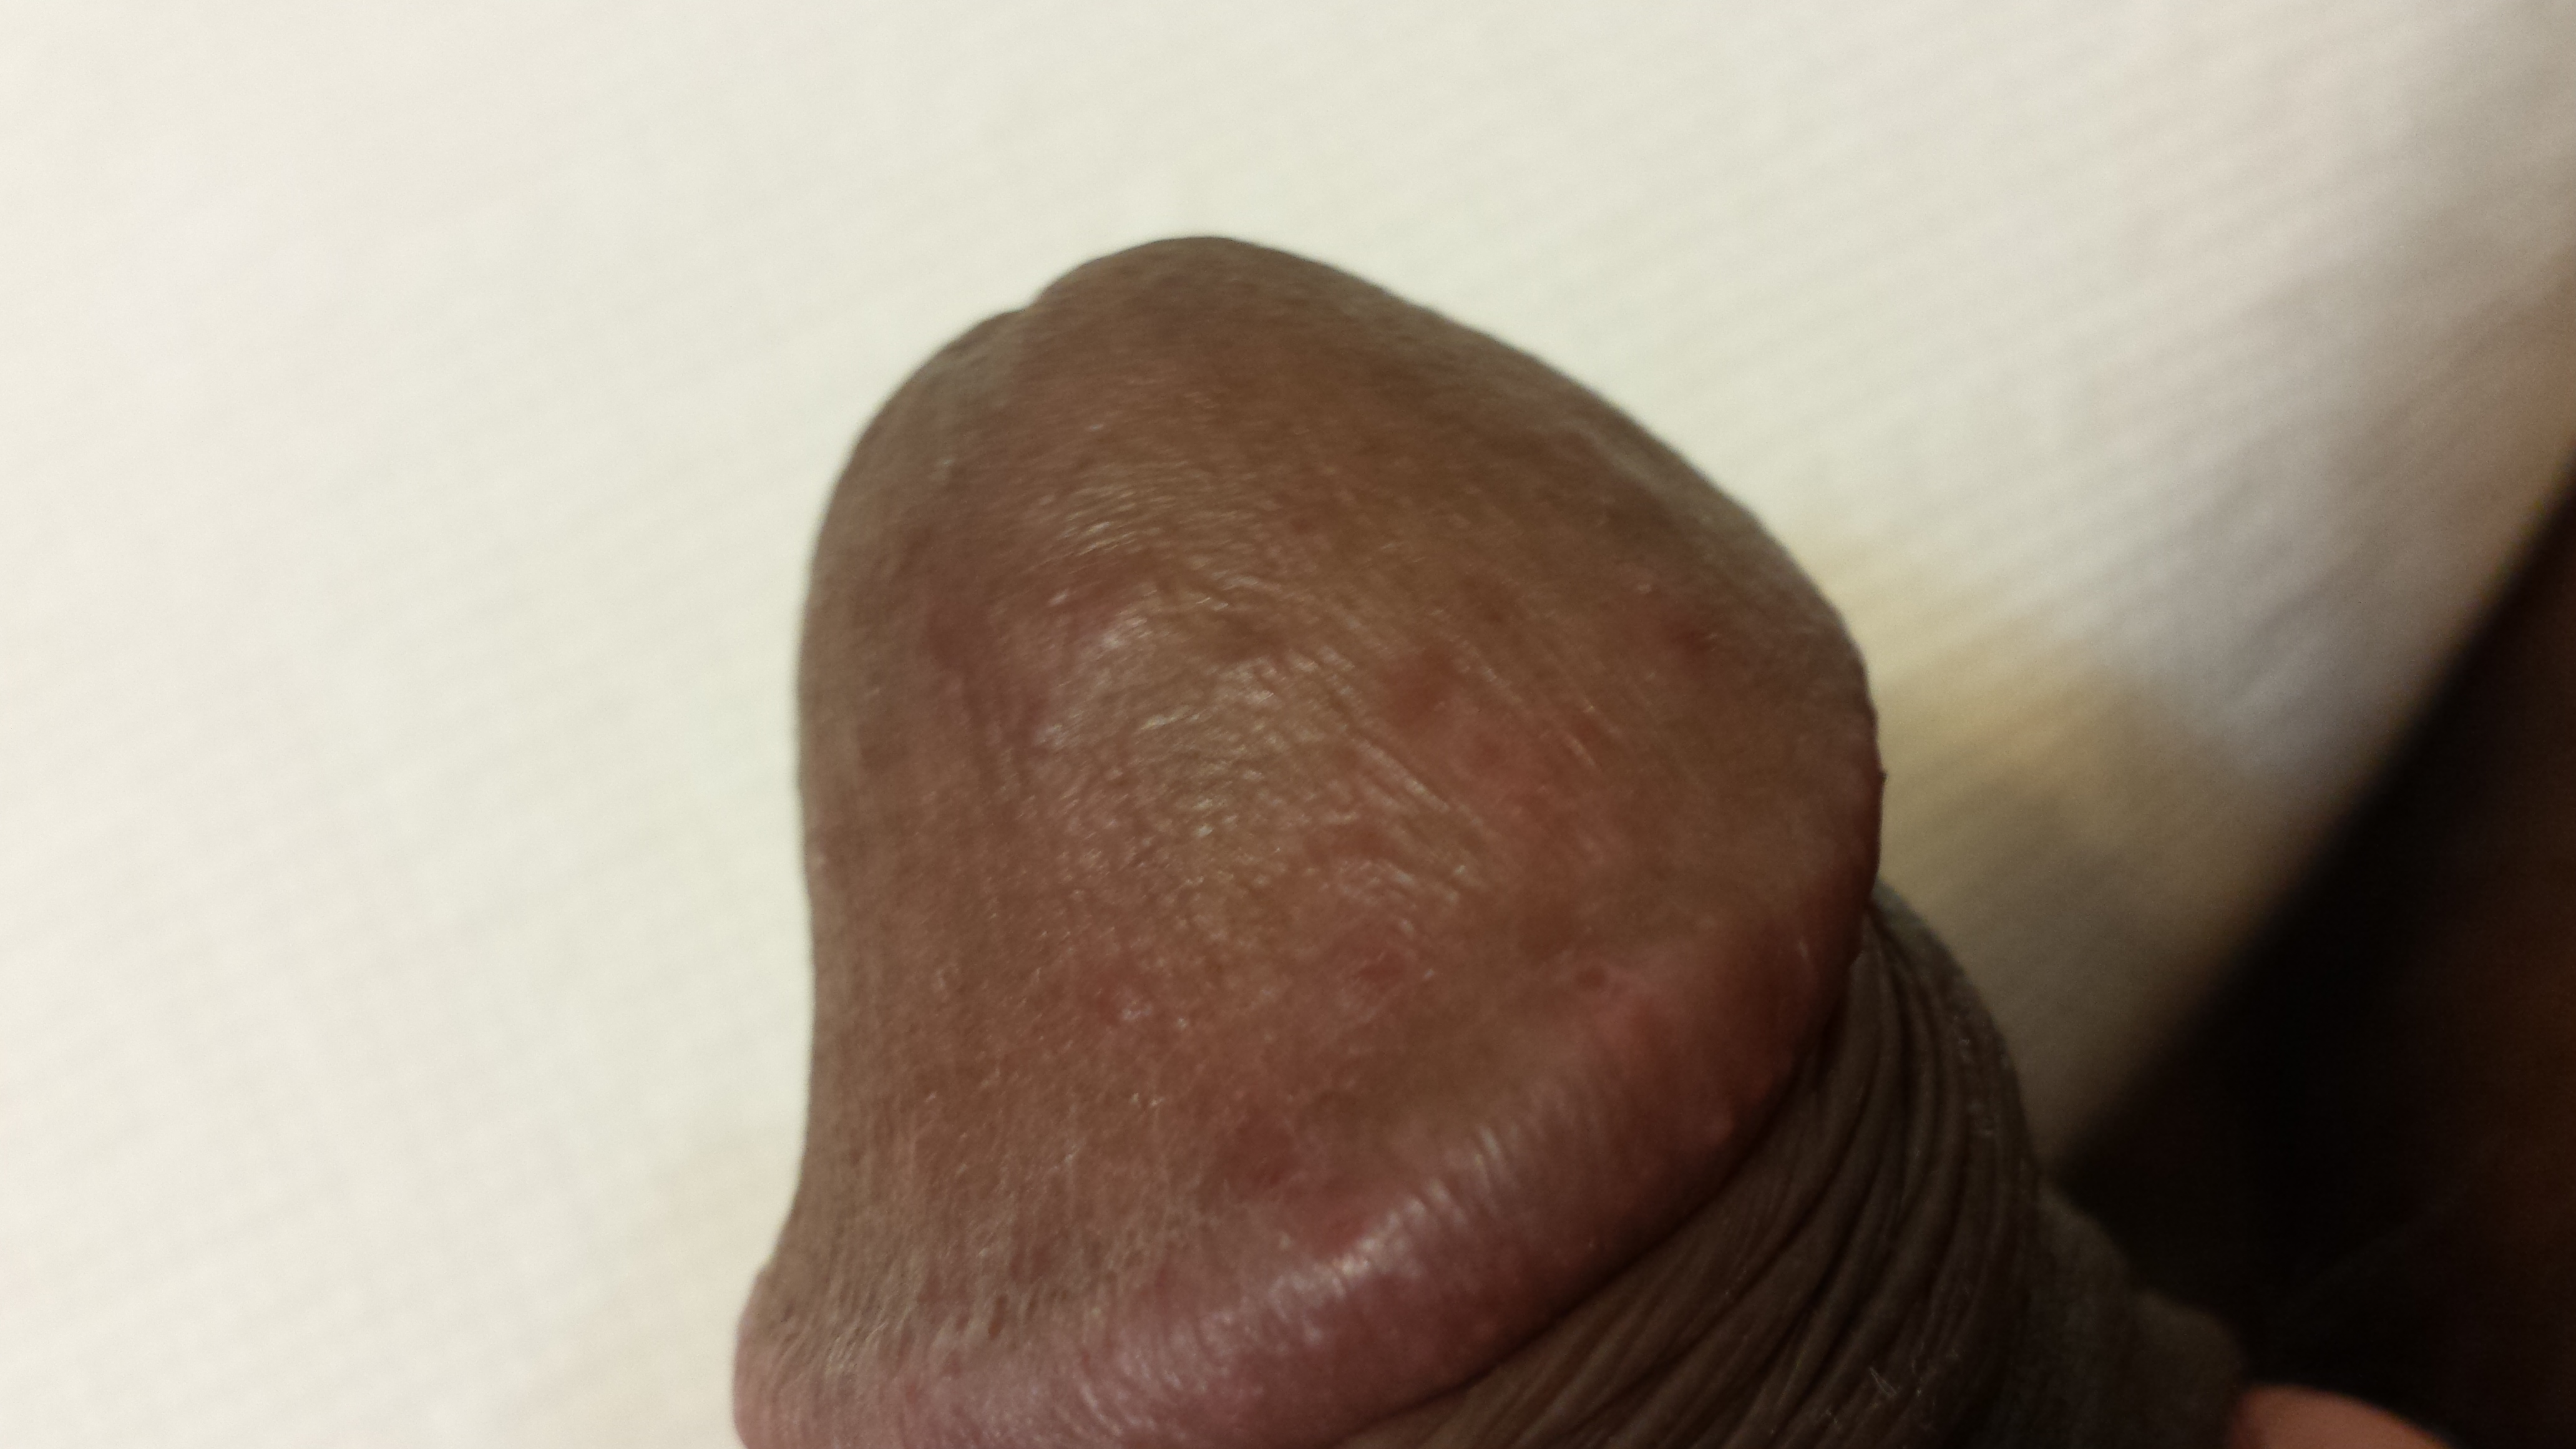 Red Dots Penis Head 13